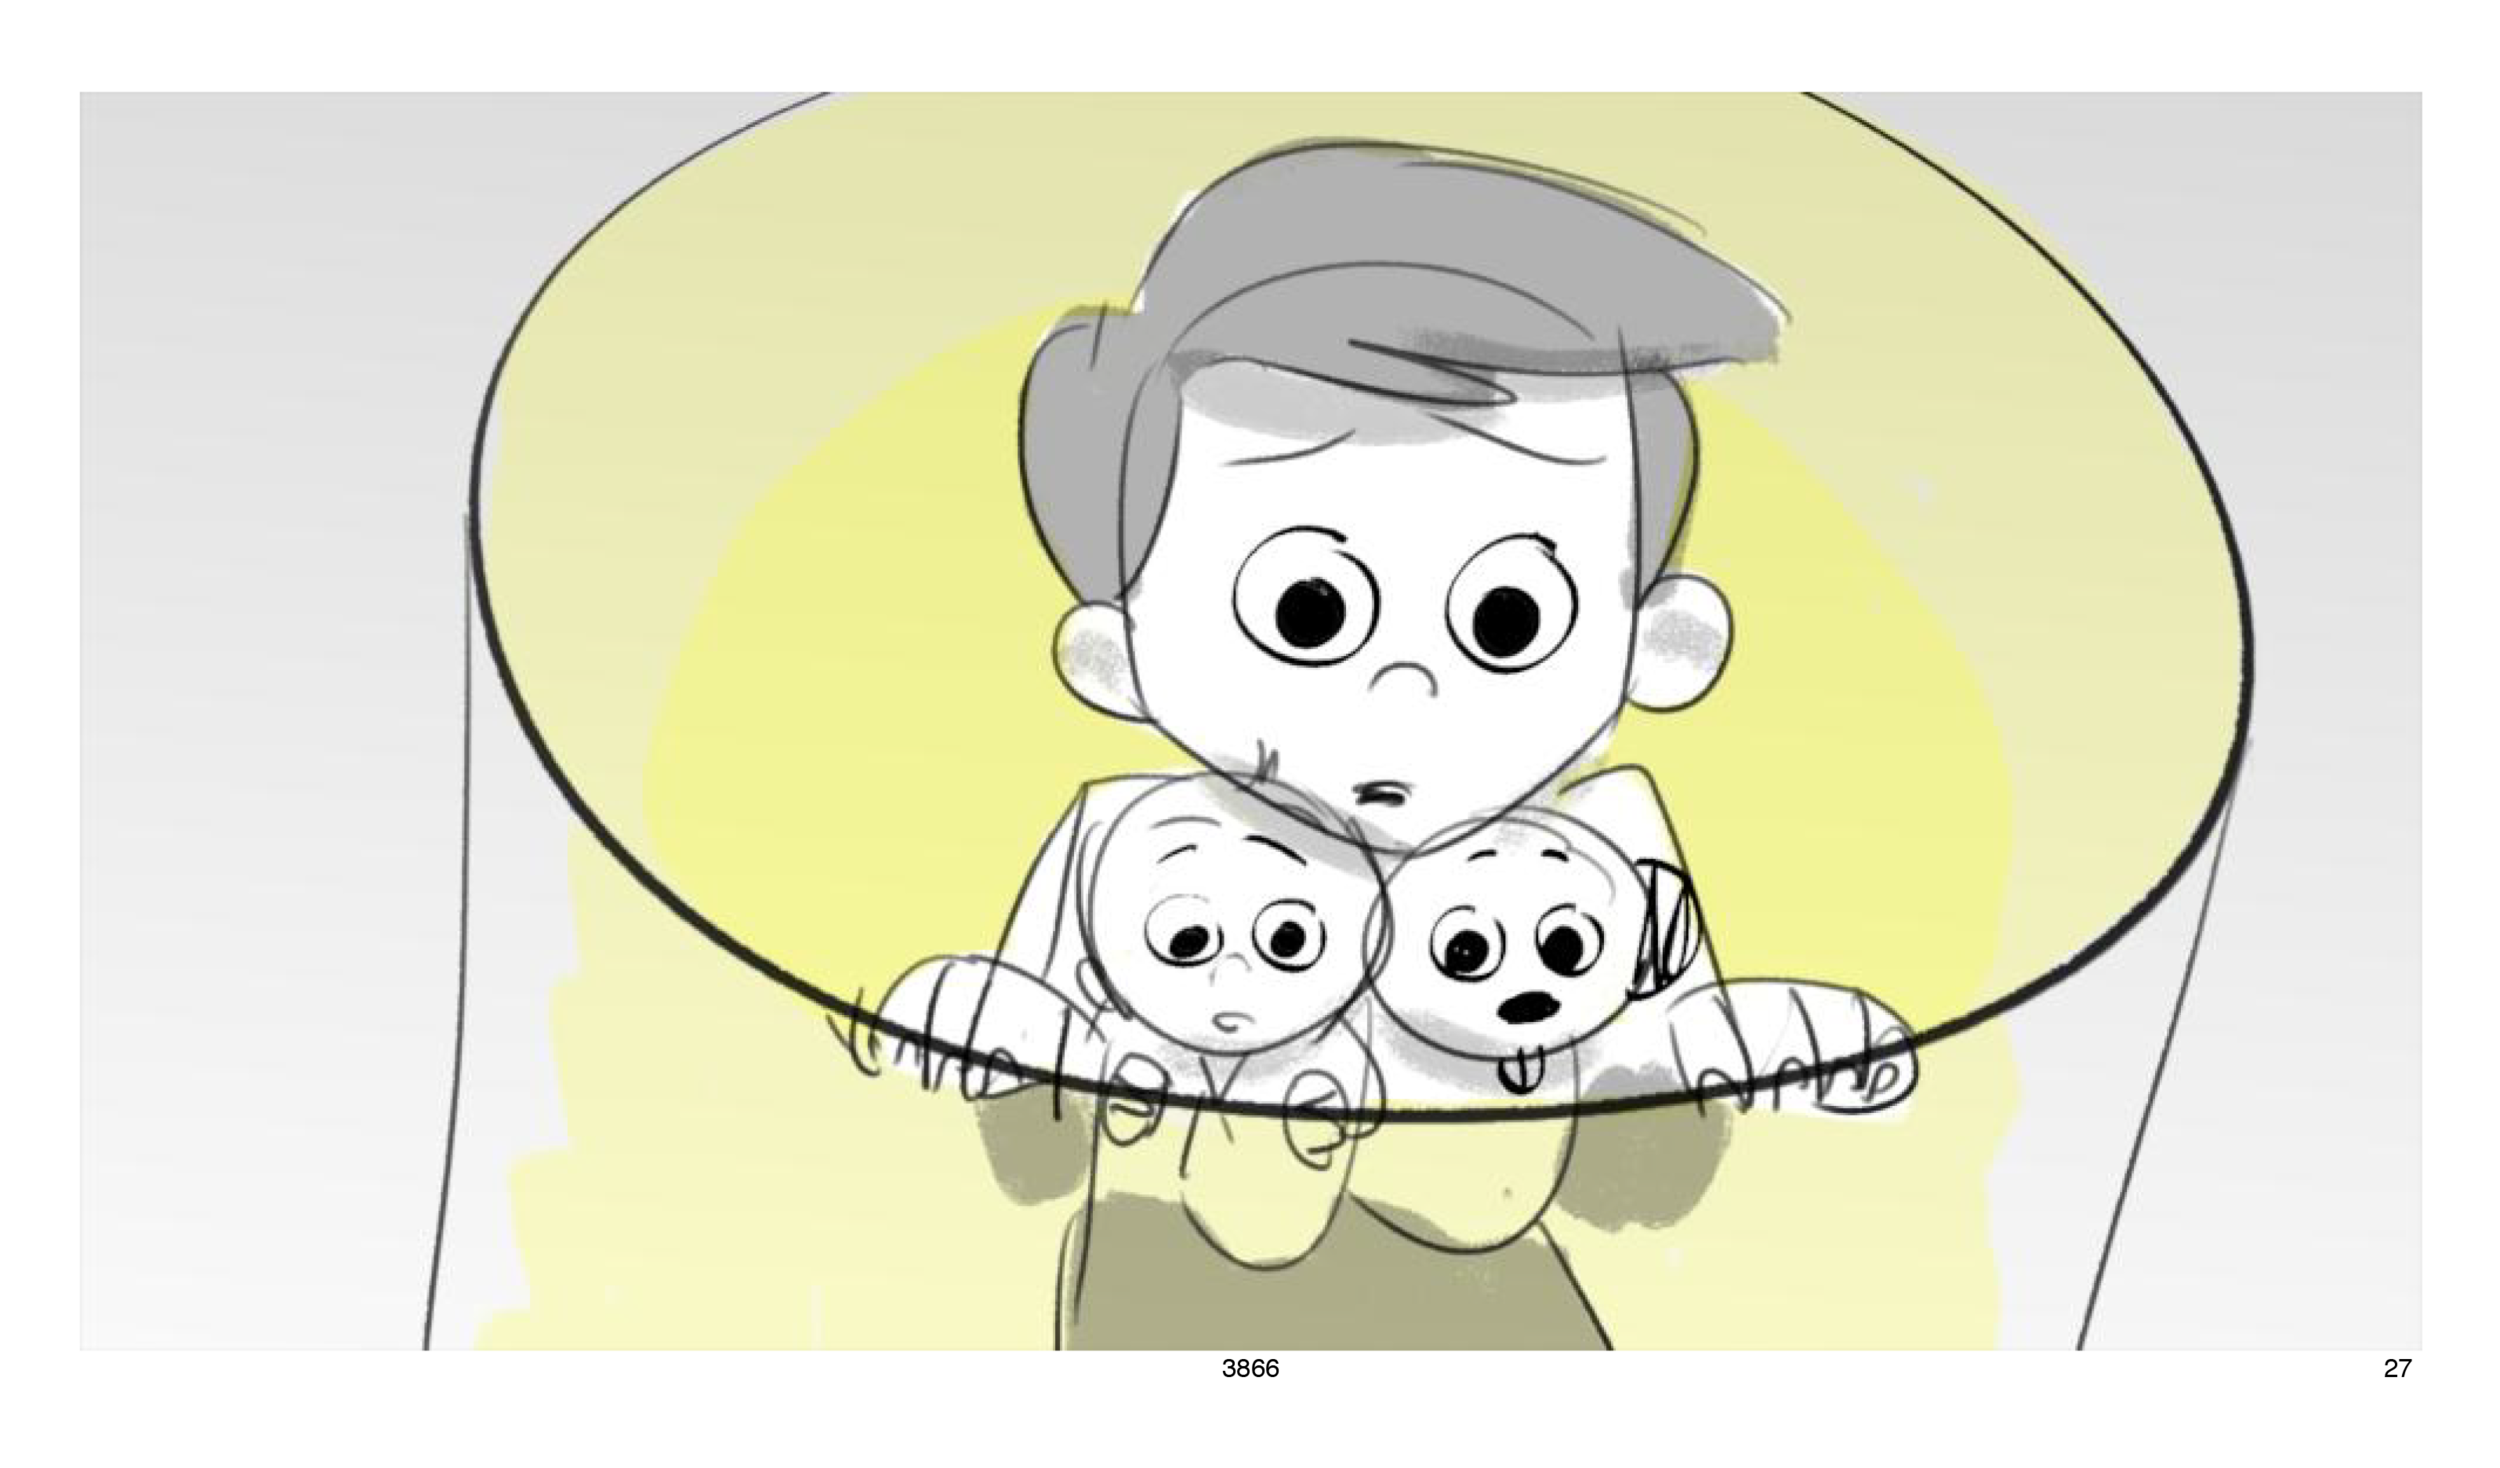 BossBaby_027.png